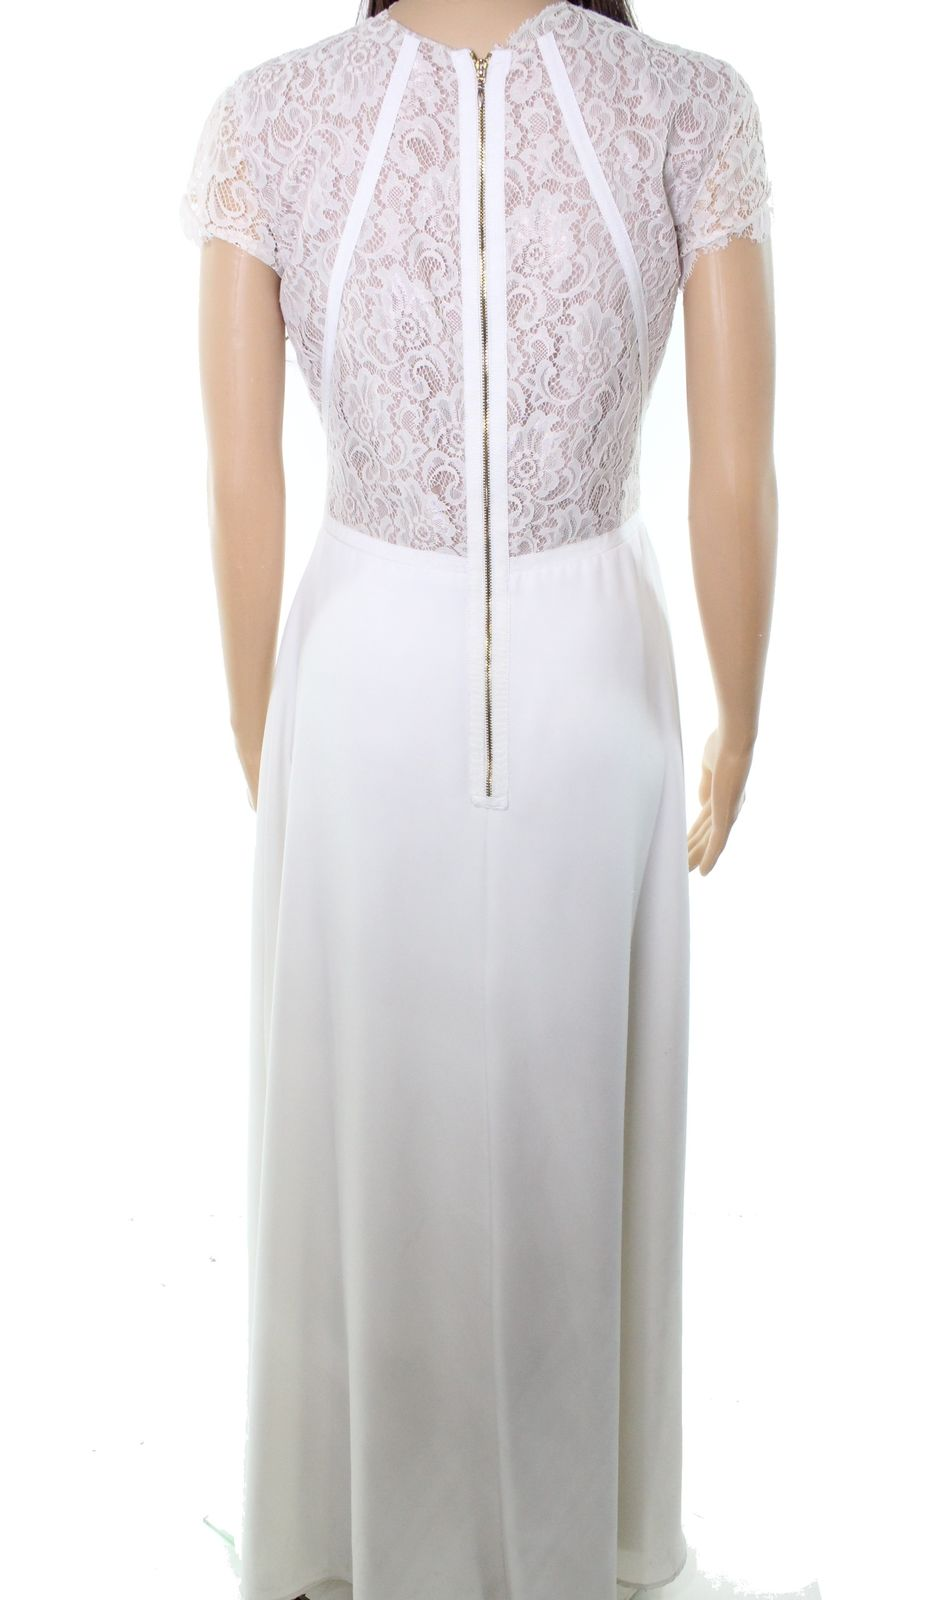 Nha Khanh White Ivory Women's Women's Women's Size 6 Crepe Floral Lace Bodice Gown  945 11901e